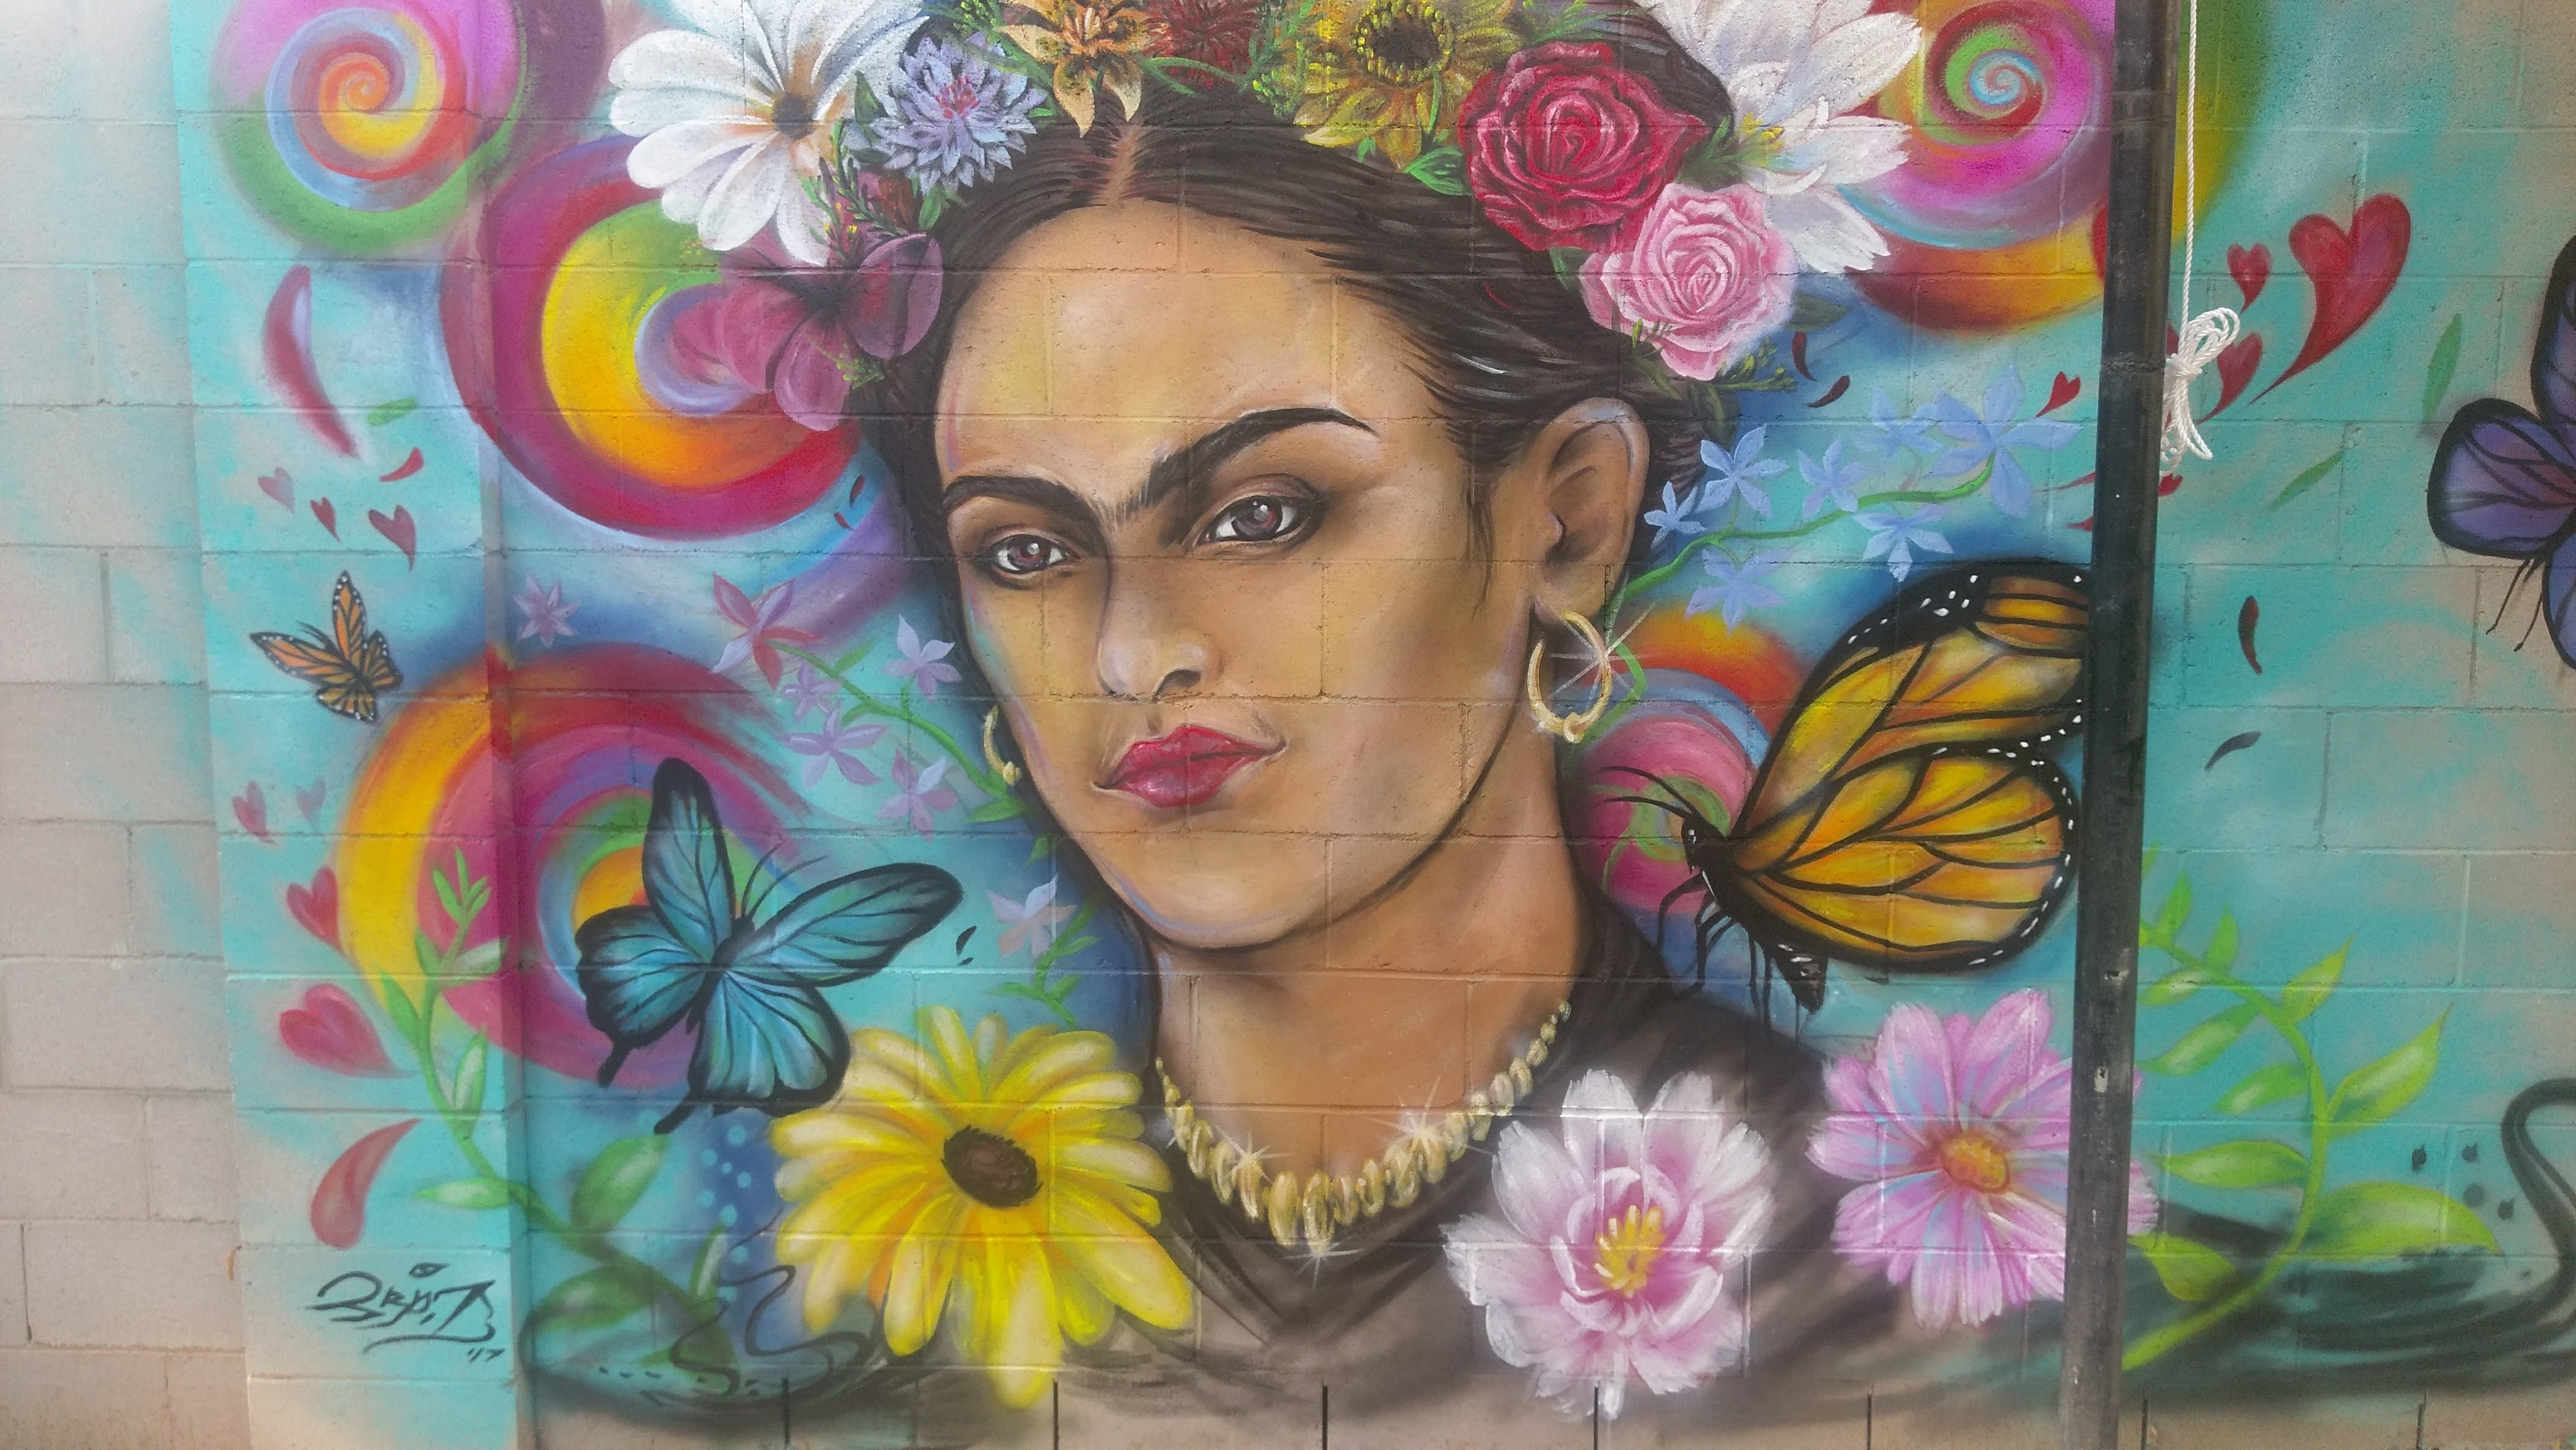 mural portrait of Frida Kahlo